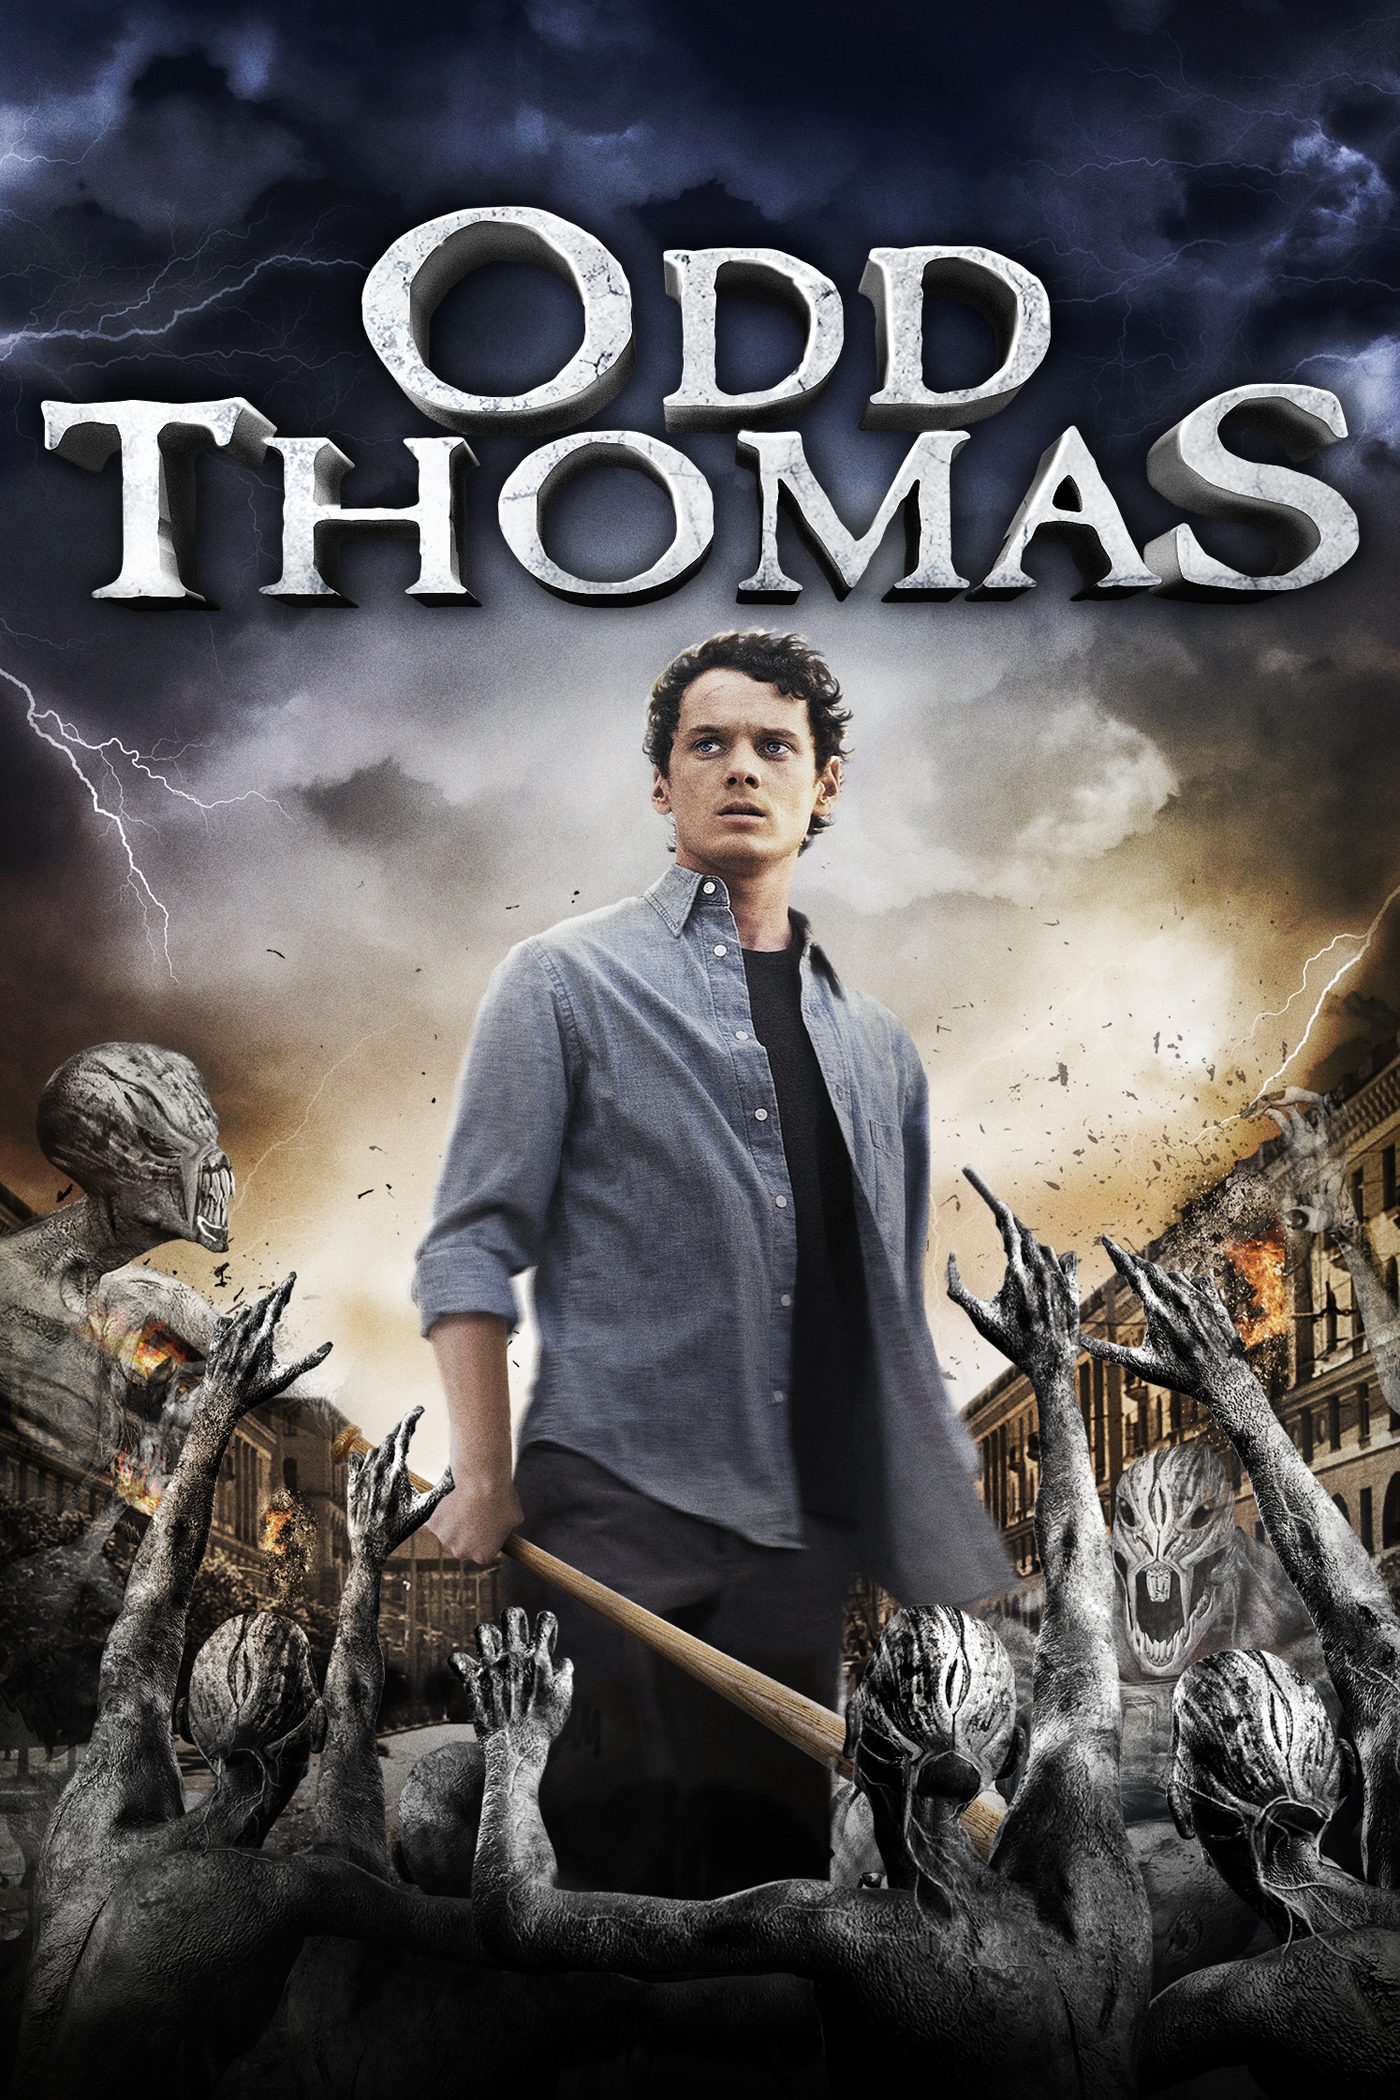 When Books Become Movies: Odd Thomas